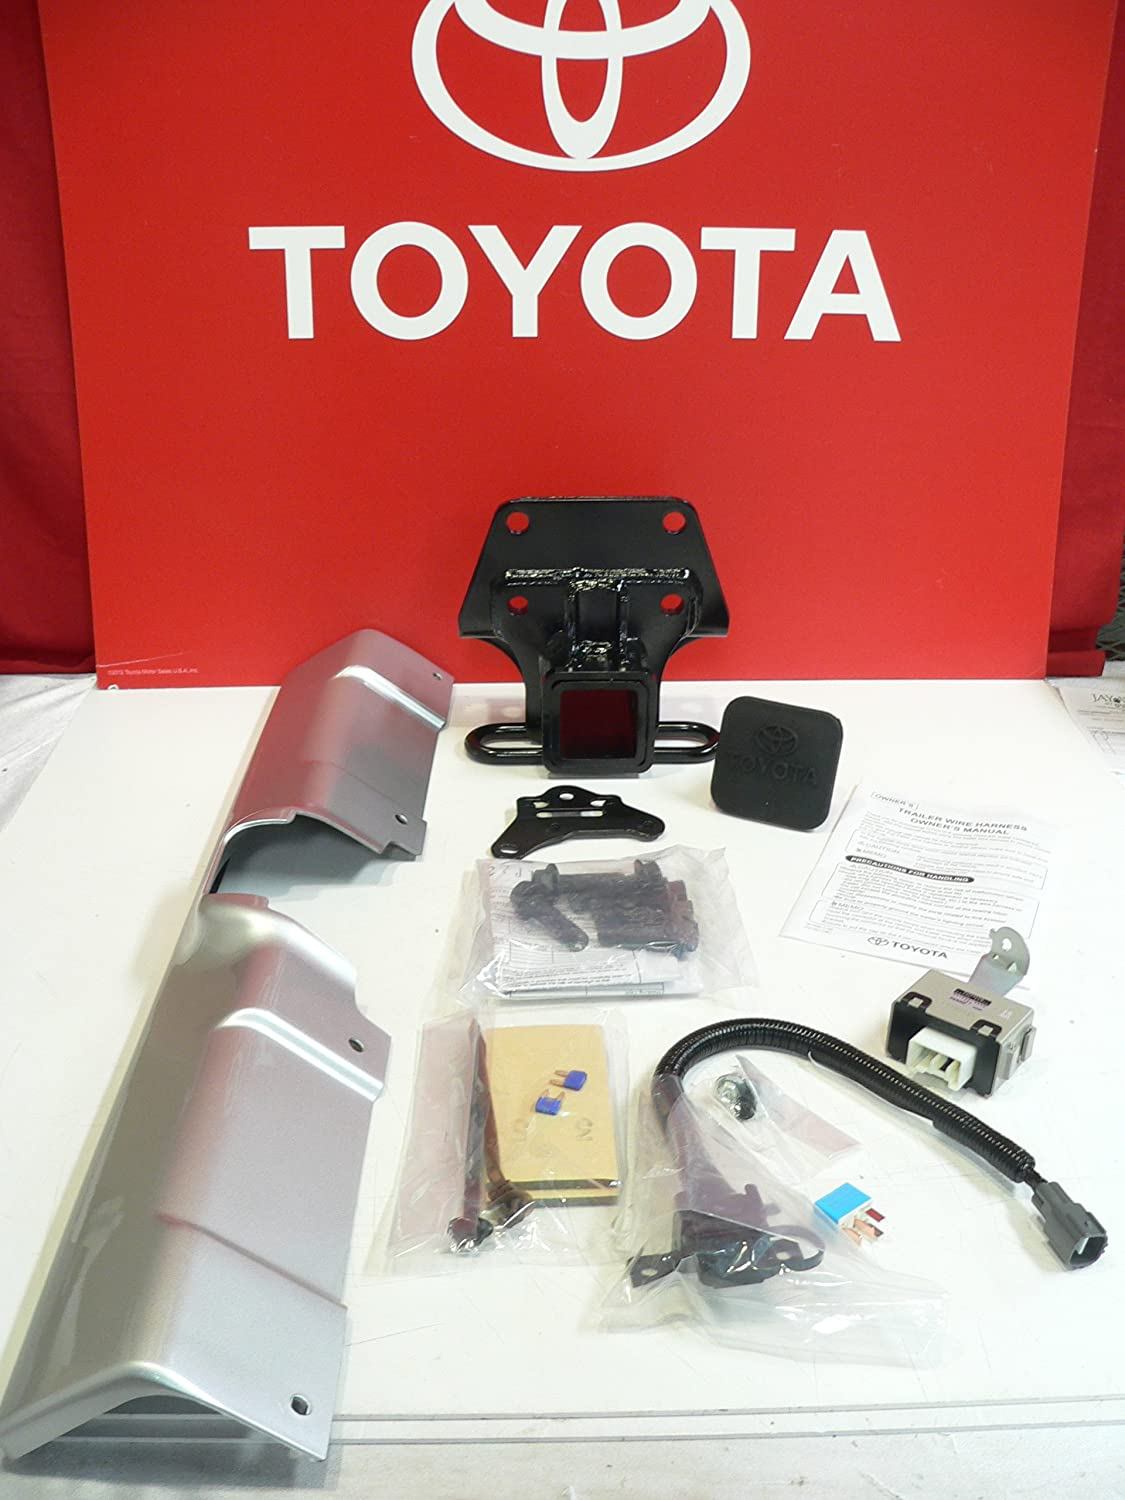 91I2j3LkAWL._SL1500_ amazon com oem toyota fj cruiser hitch and harness kit automotive  at reclaimingppi.co